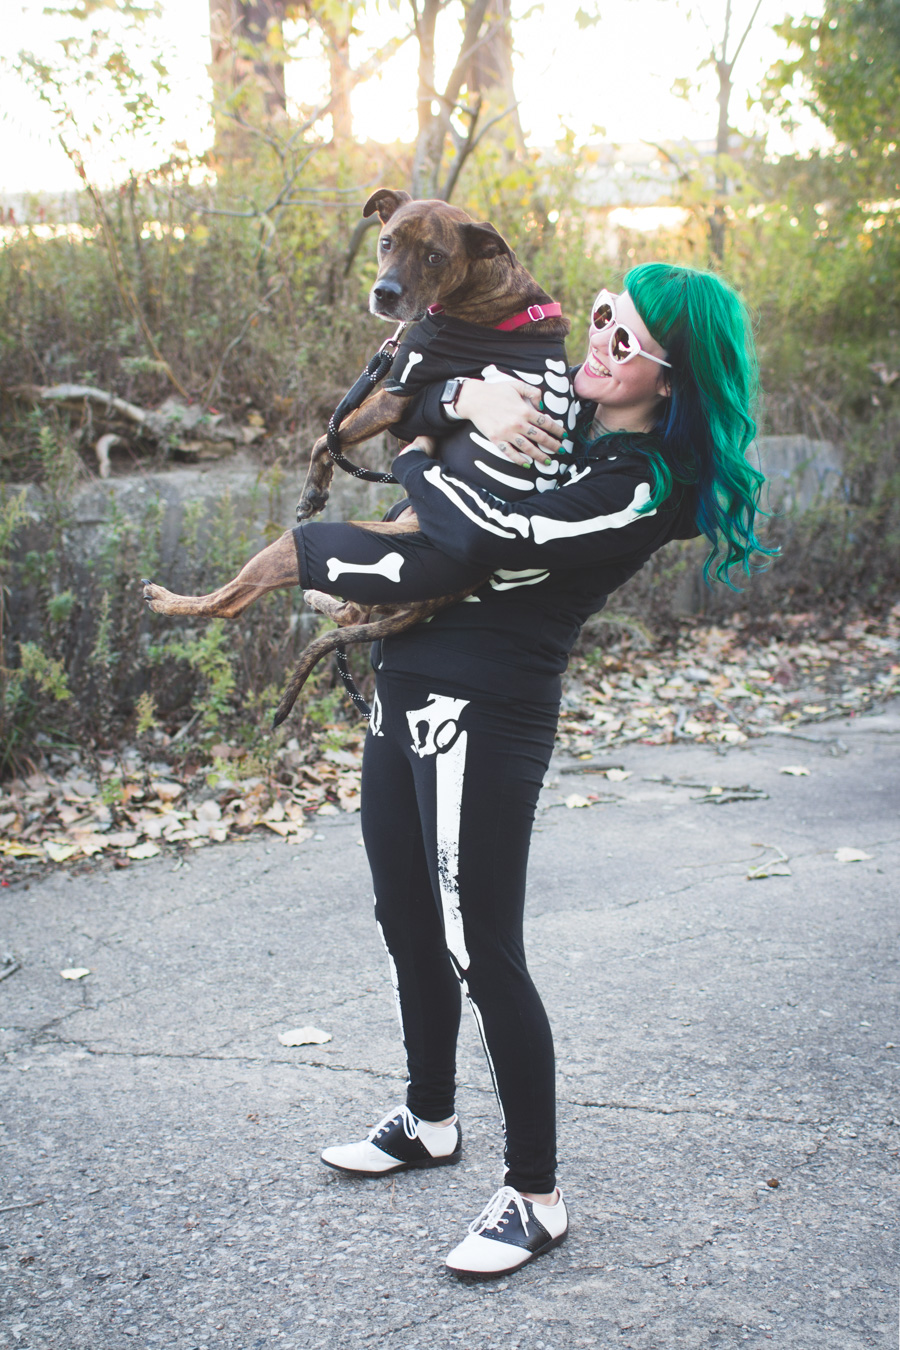 skeleton dog costume, green hair, skeleton leggings